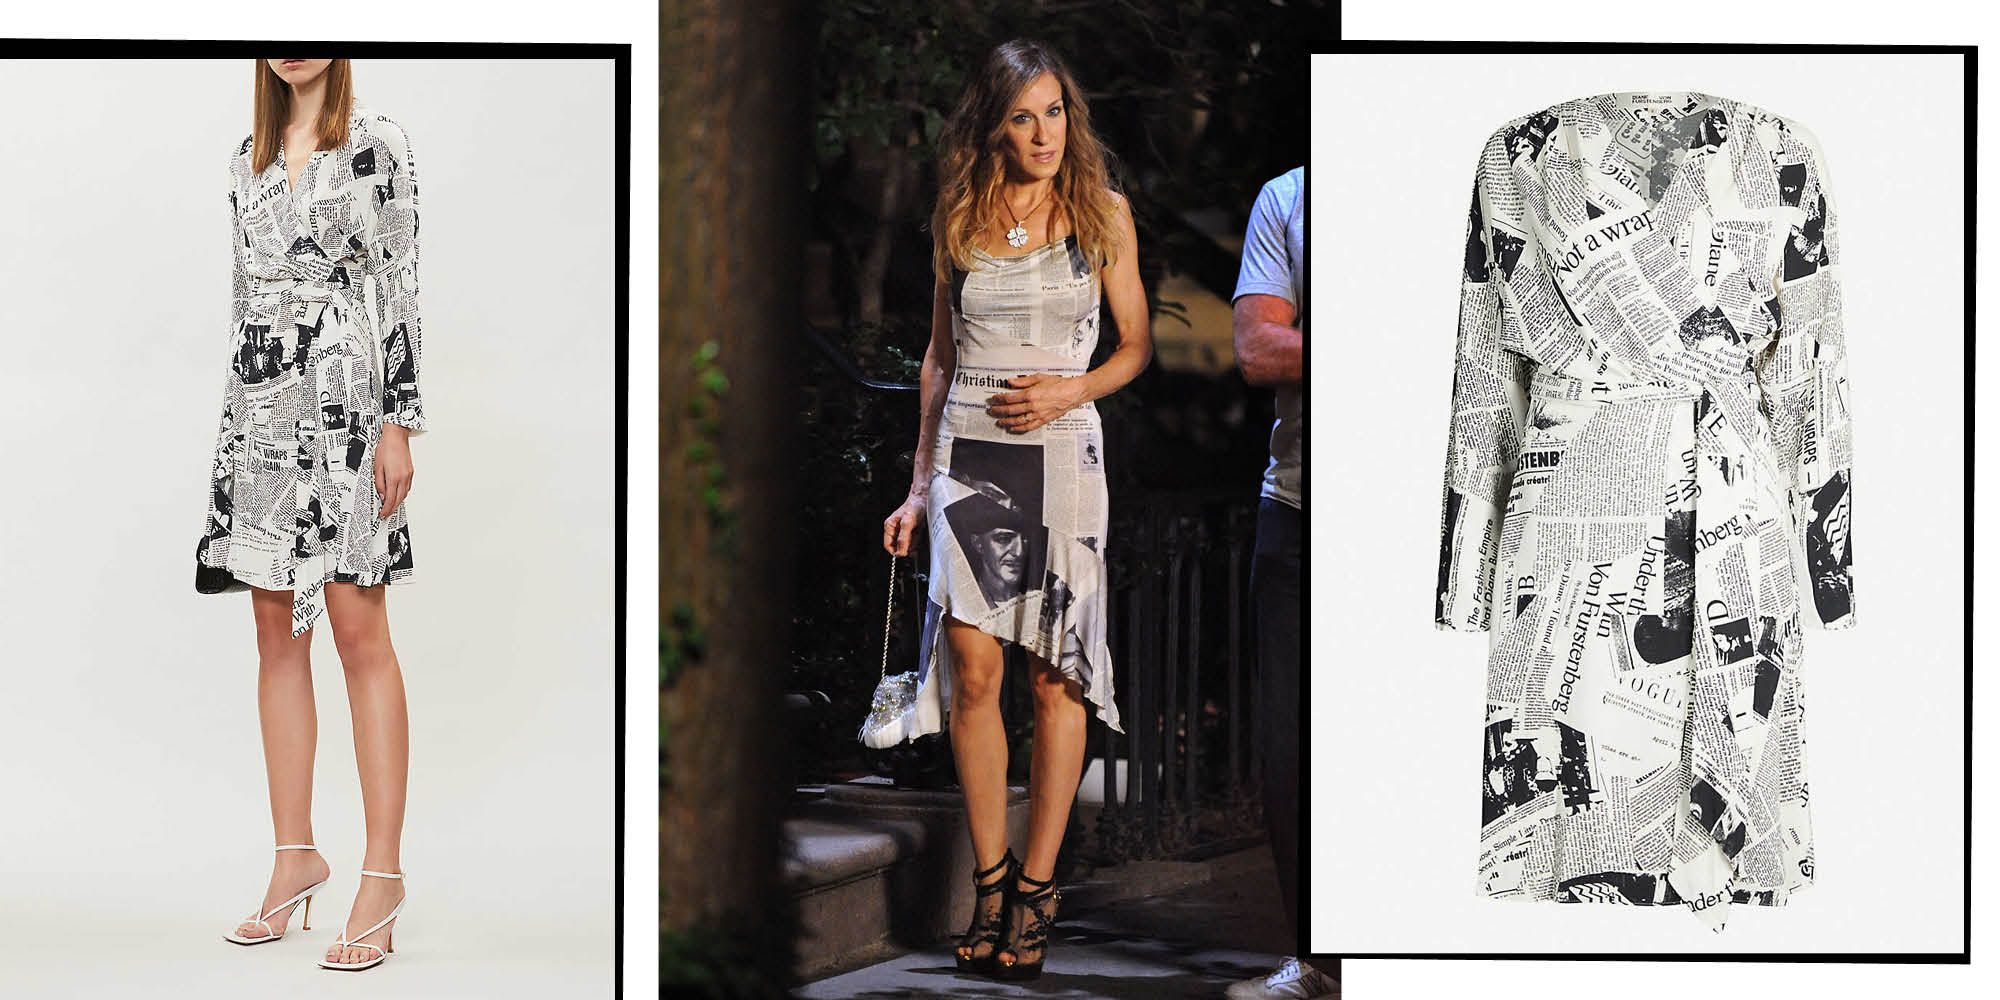 The Newspaper Print Dress Even Carrie Bradshaw Would Be Jealous Of